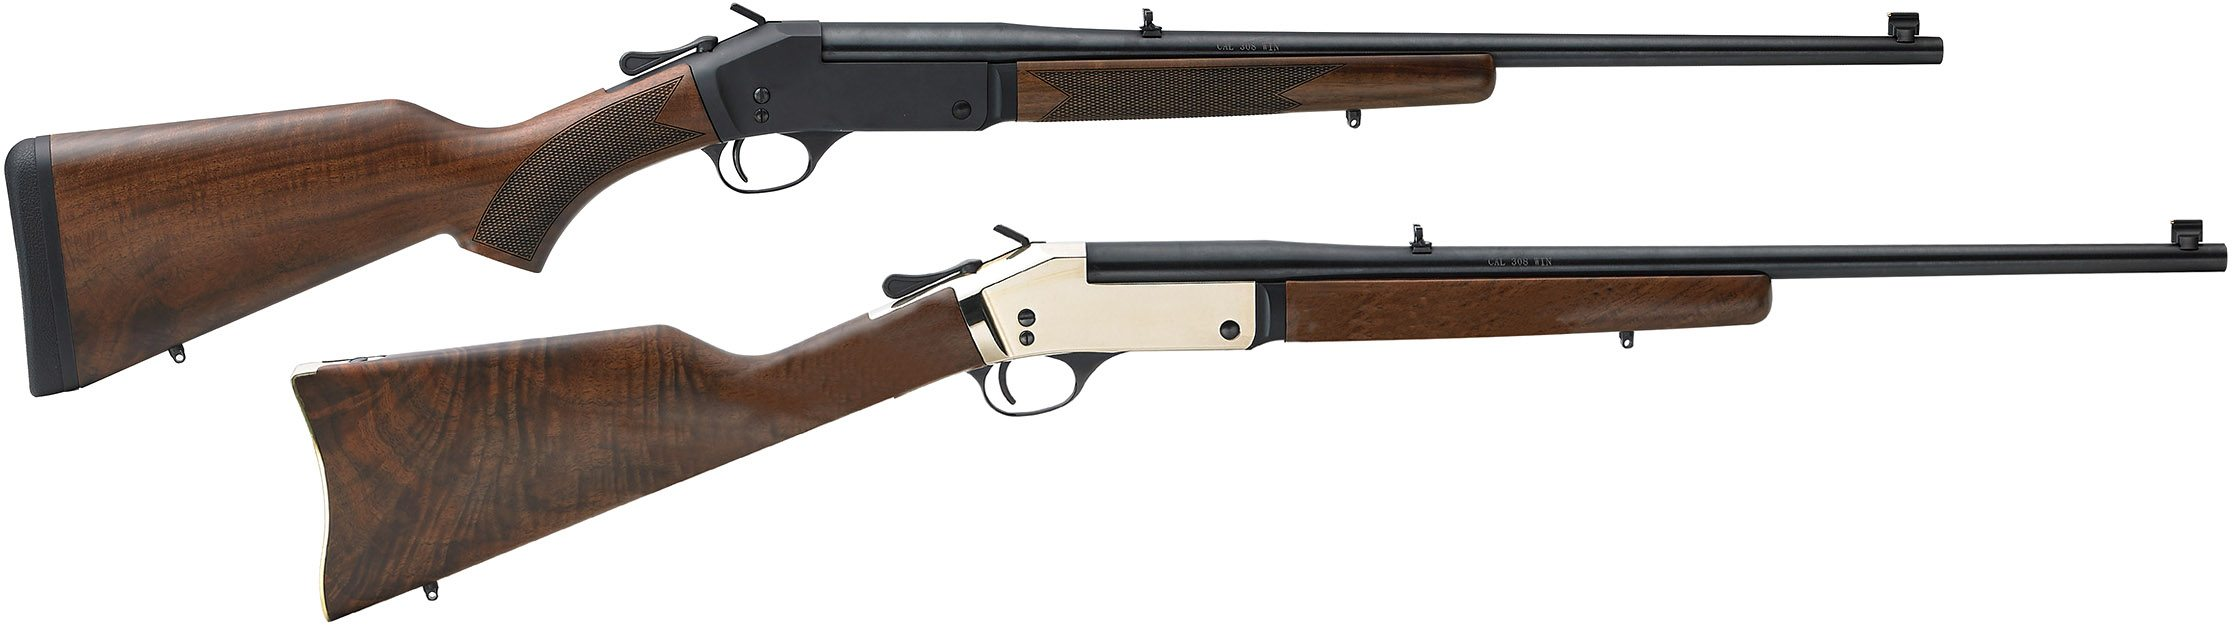 357 Remington Maximum Done Right by Mike Bellm, Mr  Max USA